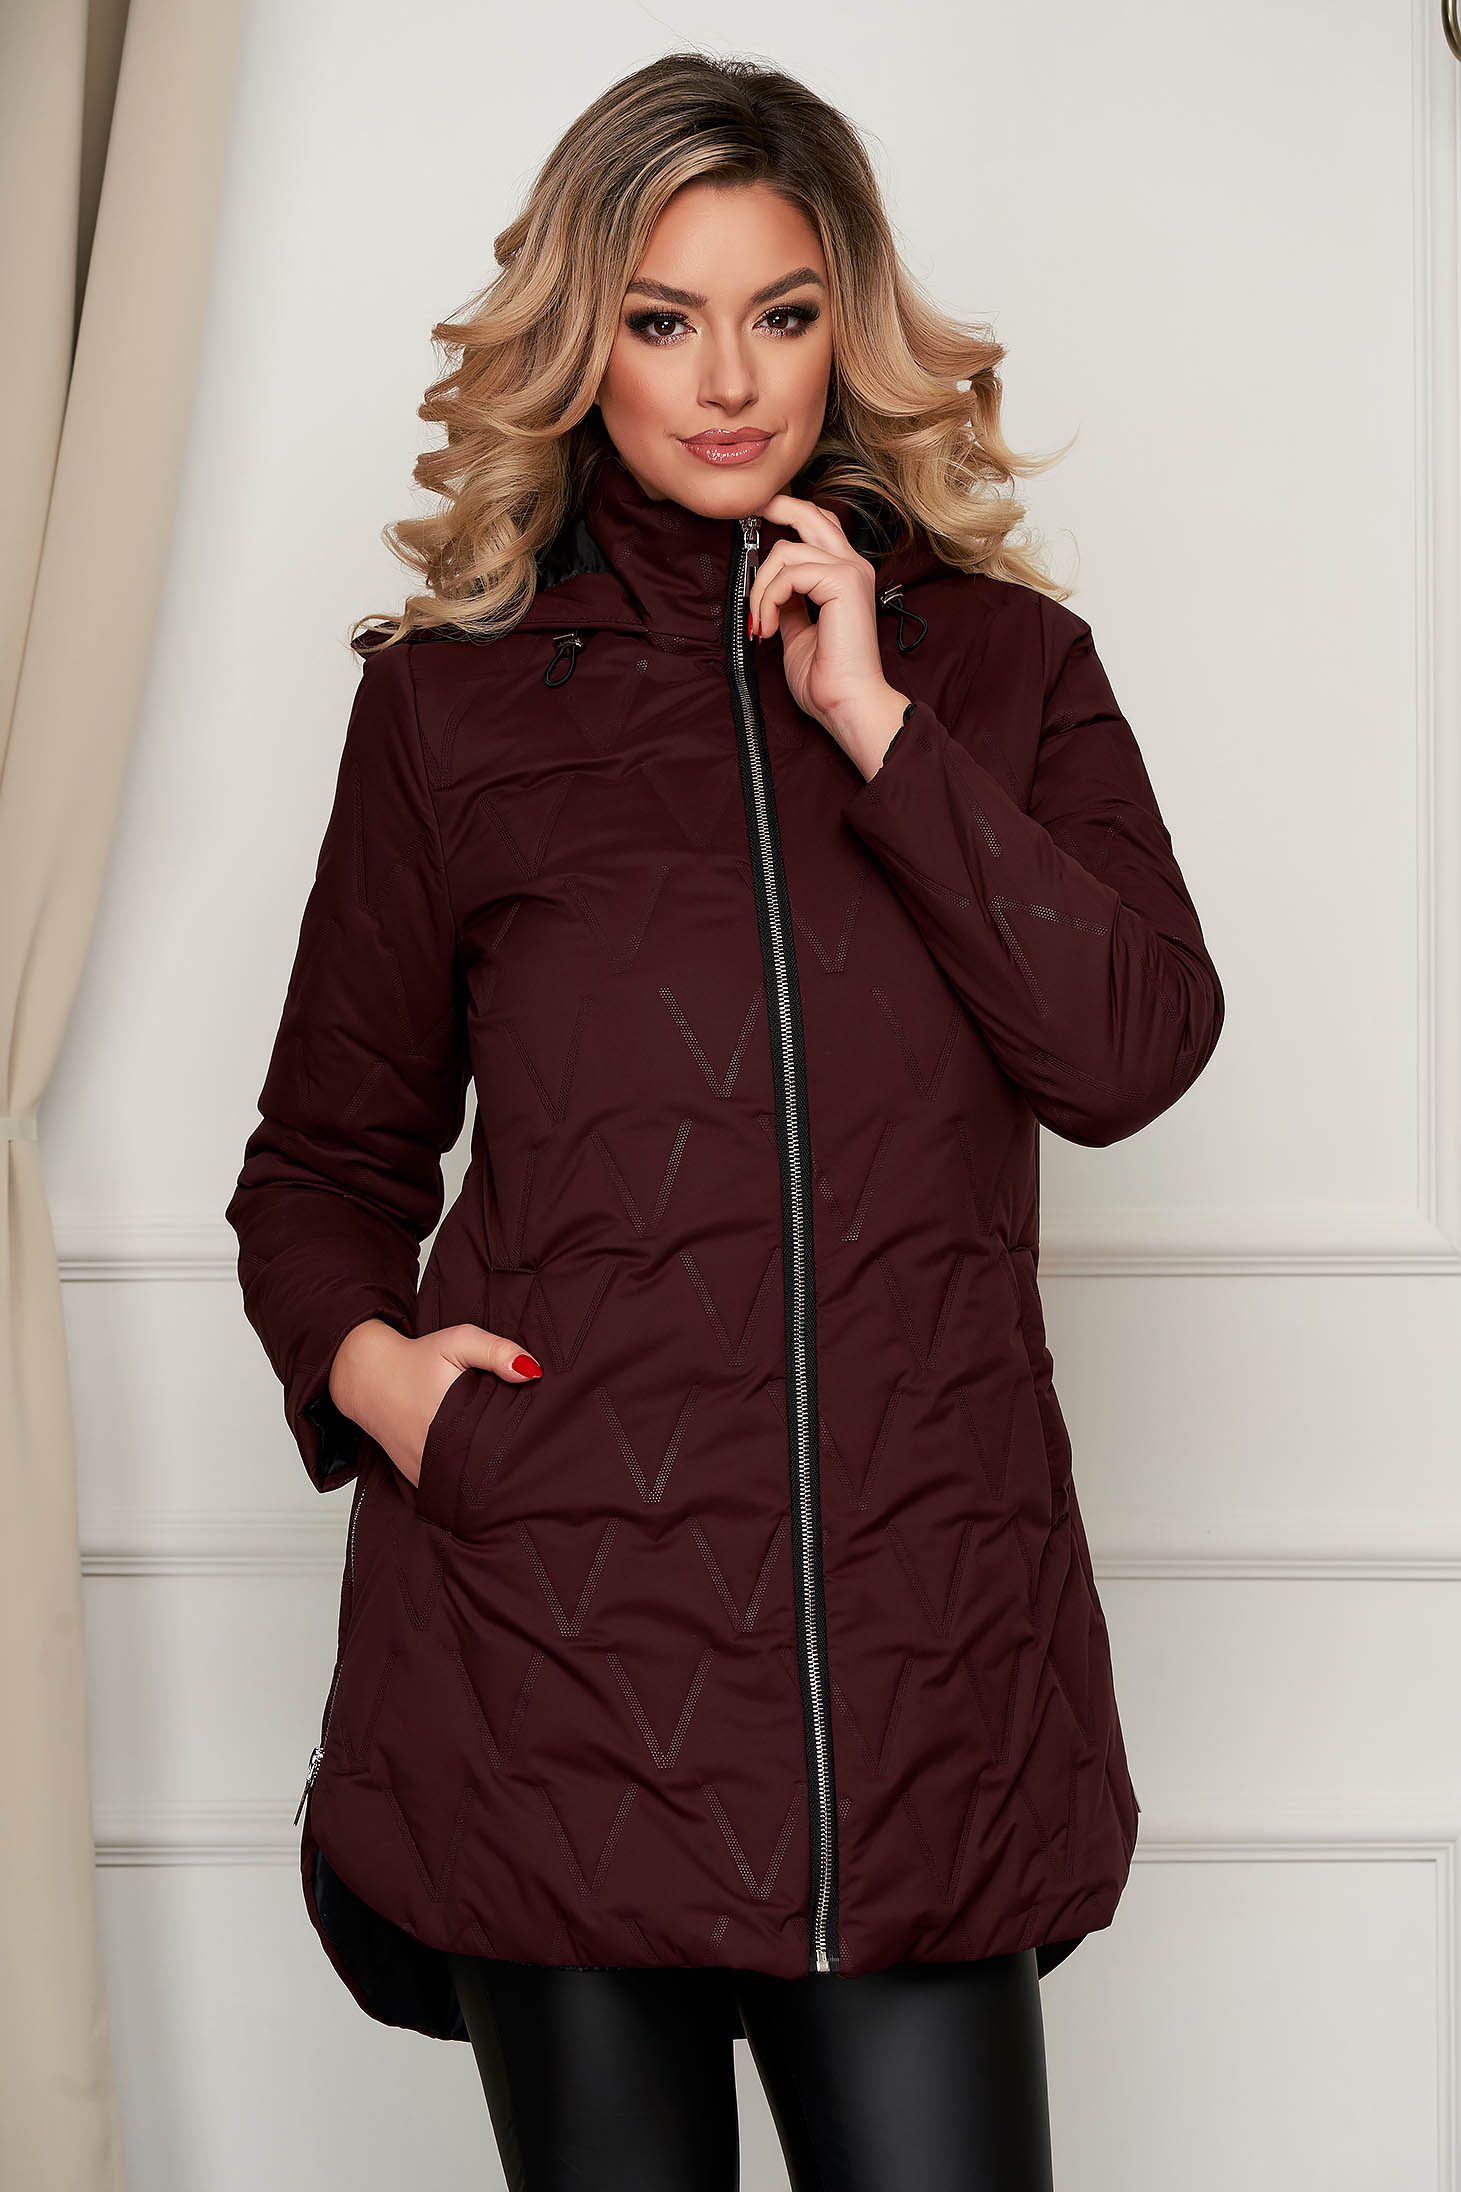 Jacket asymmetrical burgundy from slicker the jacket has hood and pockets